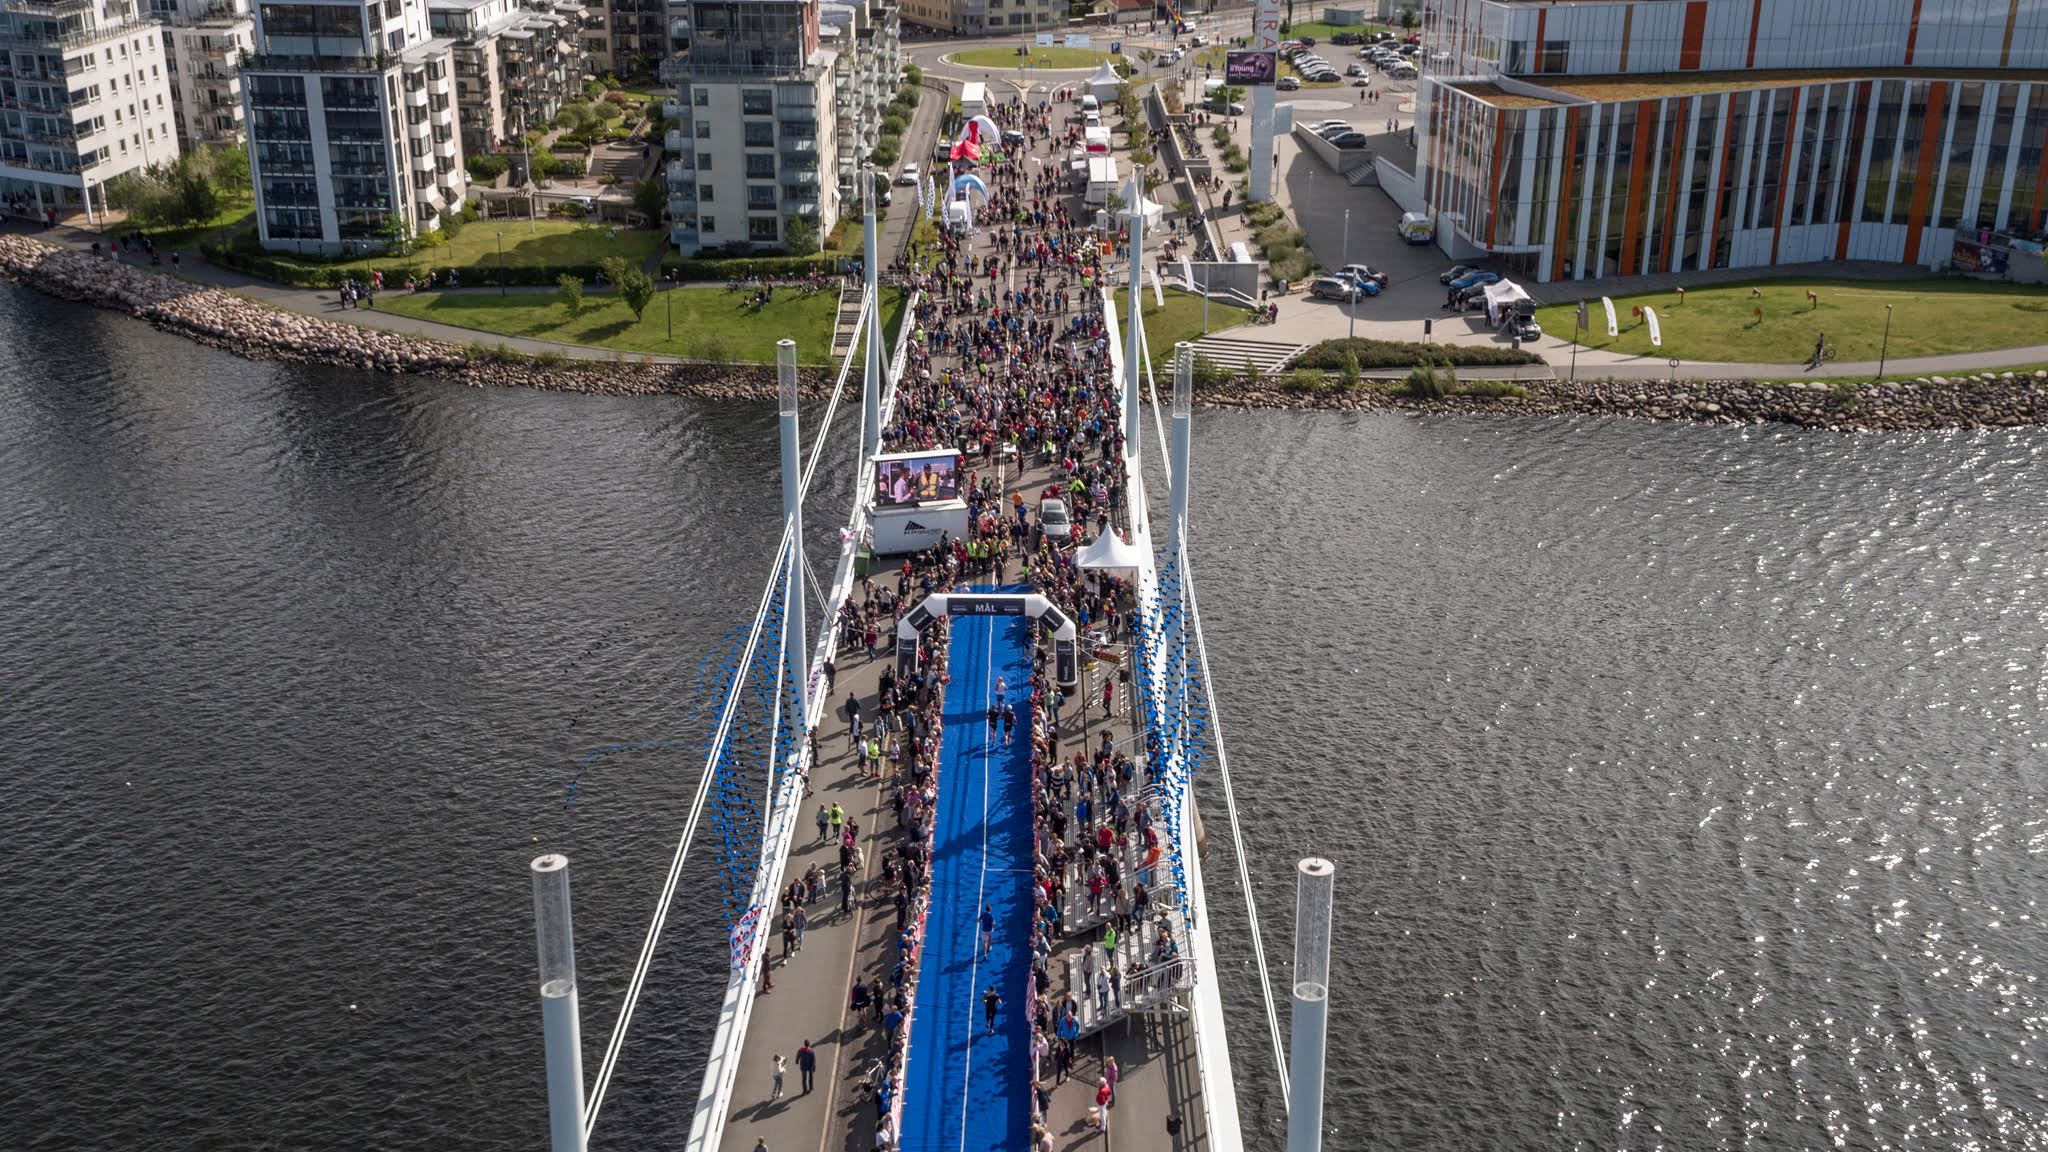 42K and 21K in the heart of Sweden - Jönköping Marathon race day must not be missed